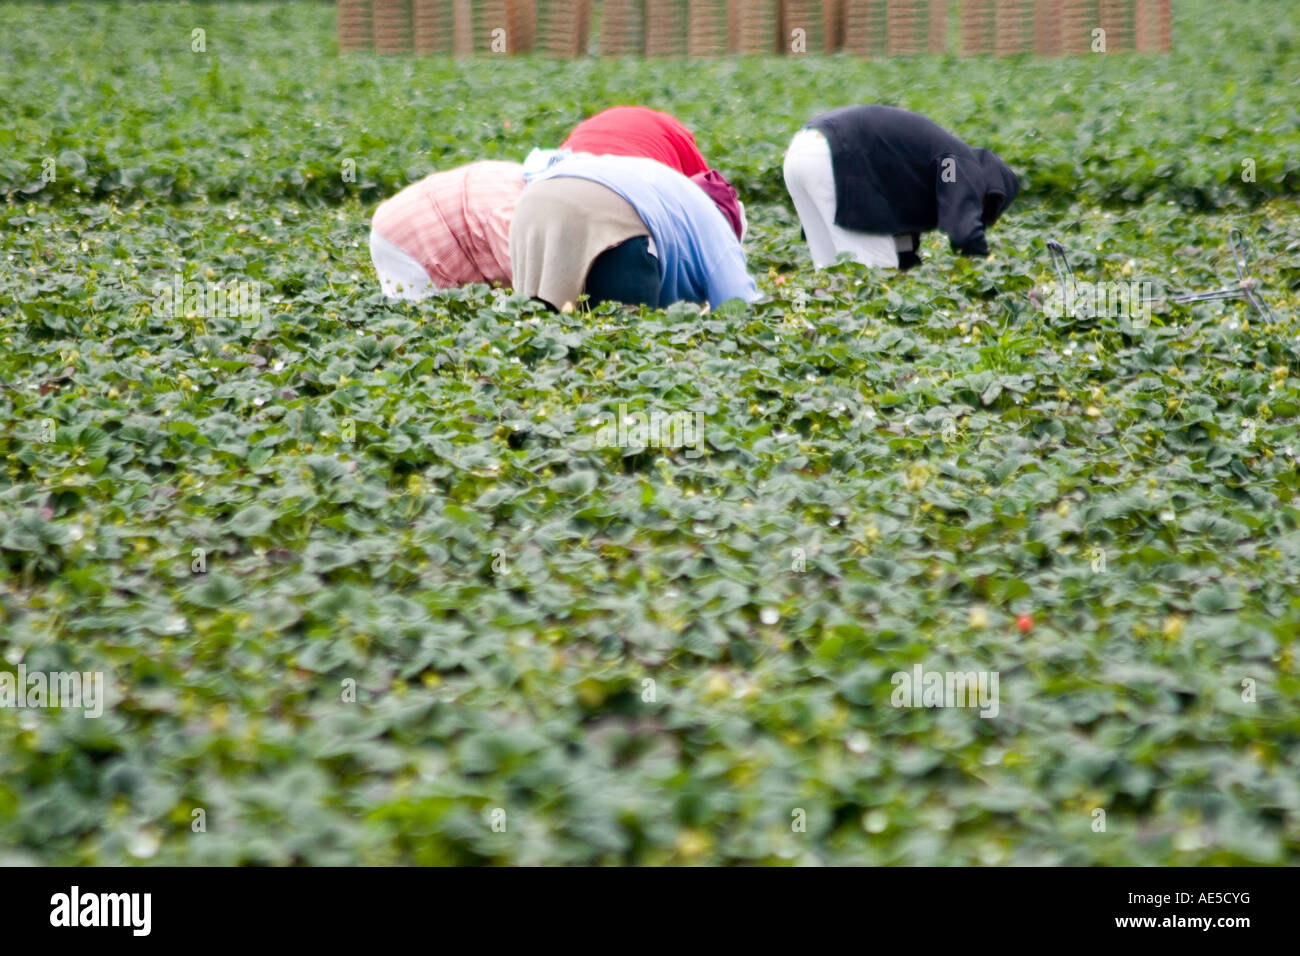 Hispanic immigrant farm workers in strawberry field bending over to pick strawberry crops - Stock Image